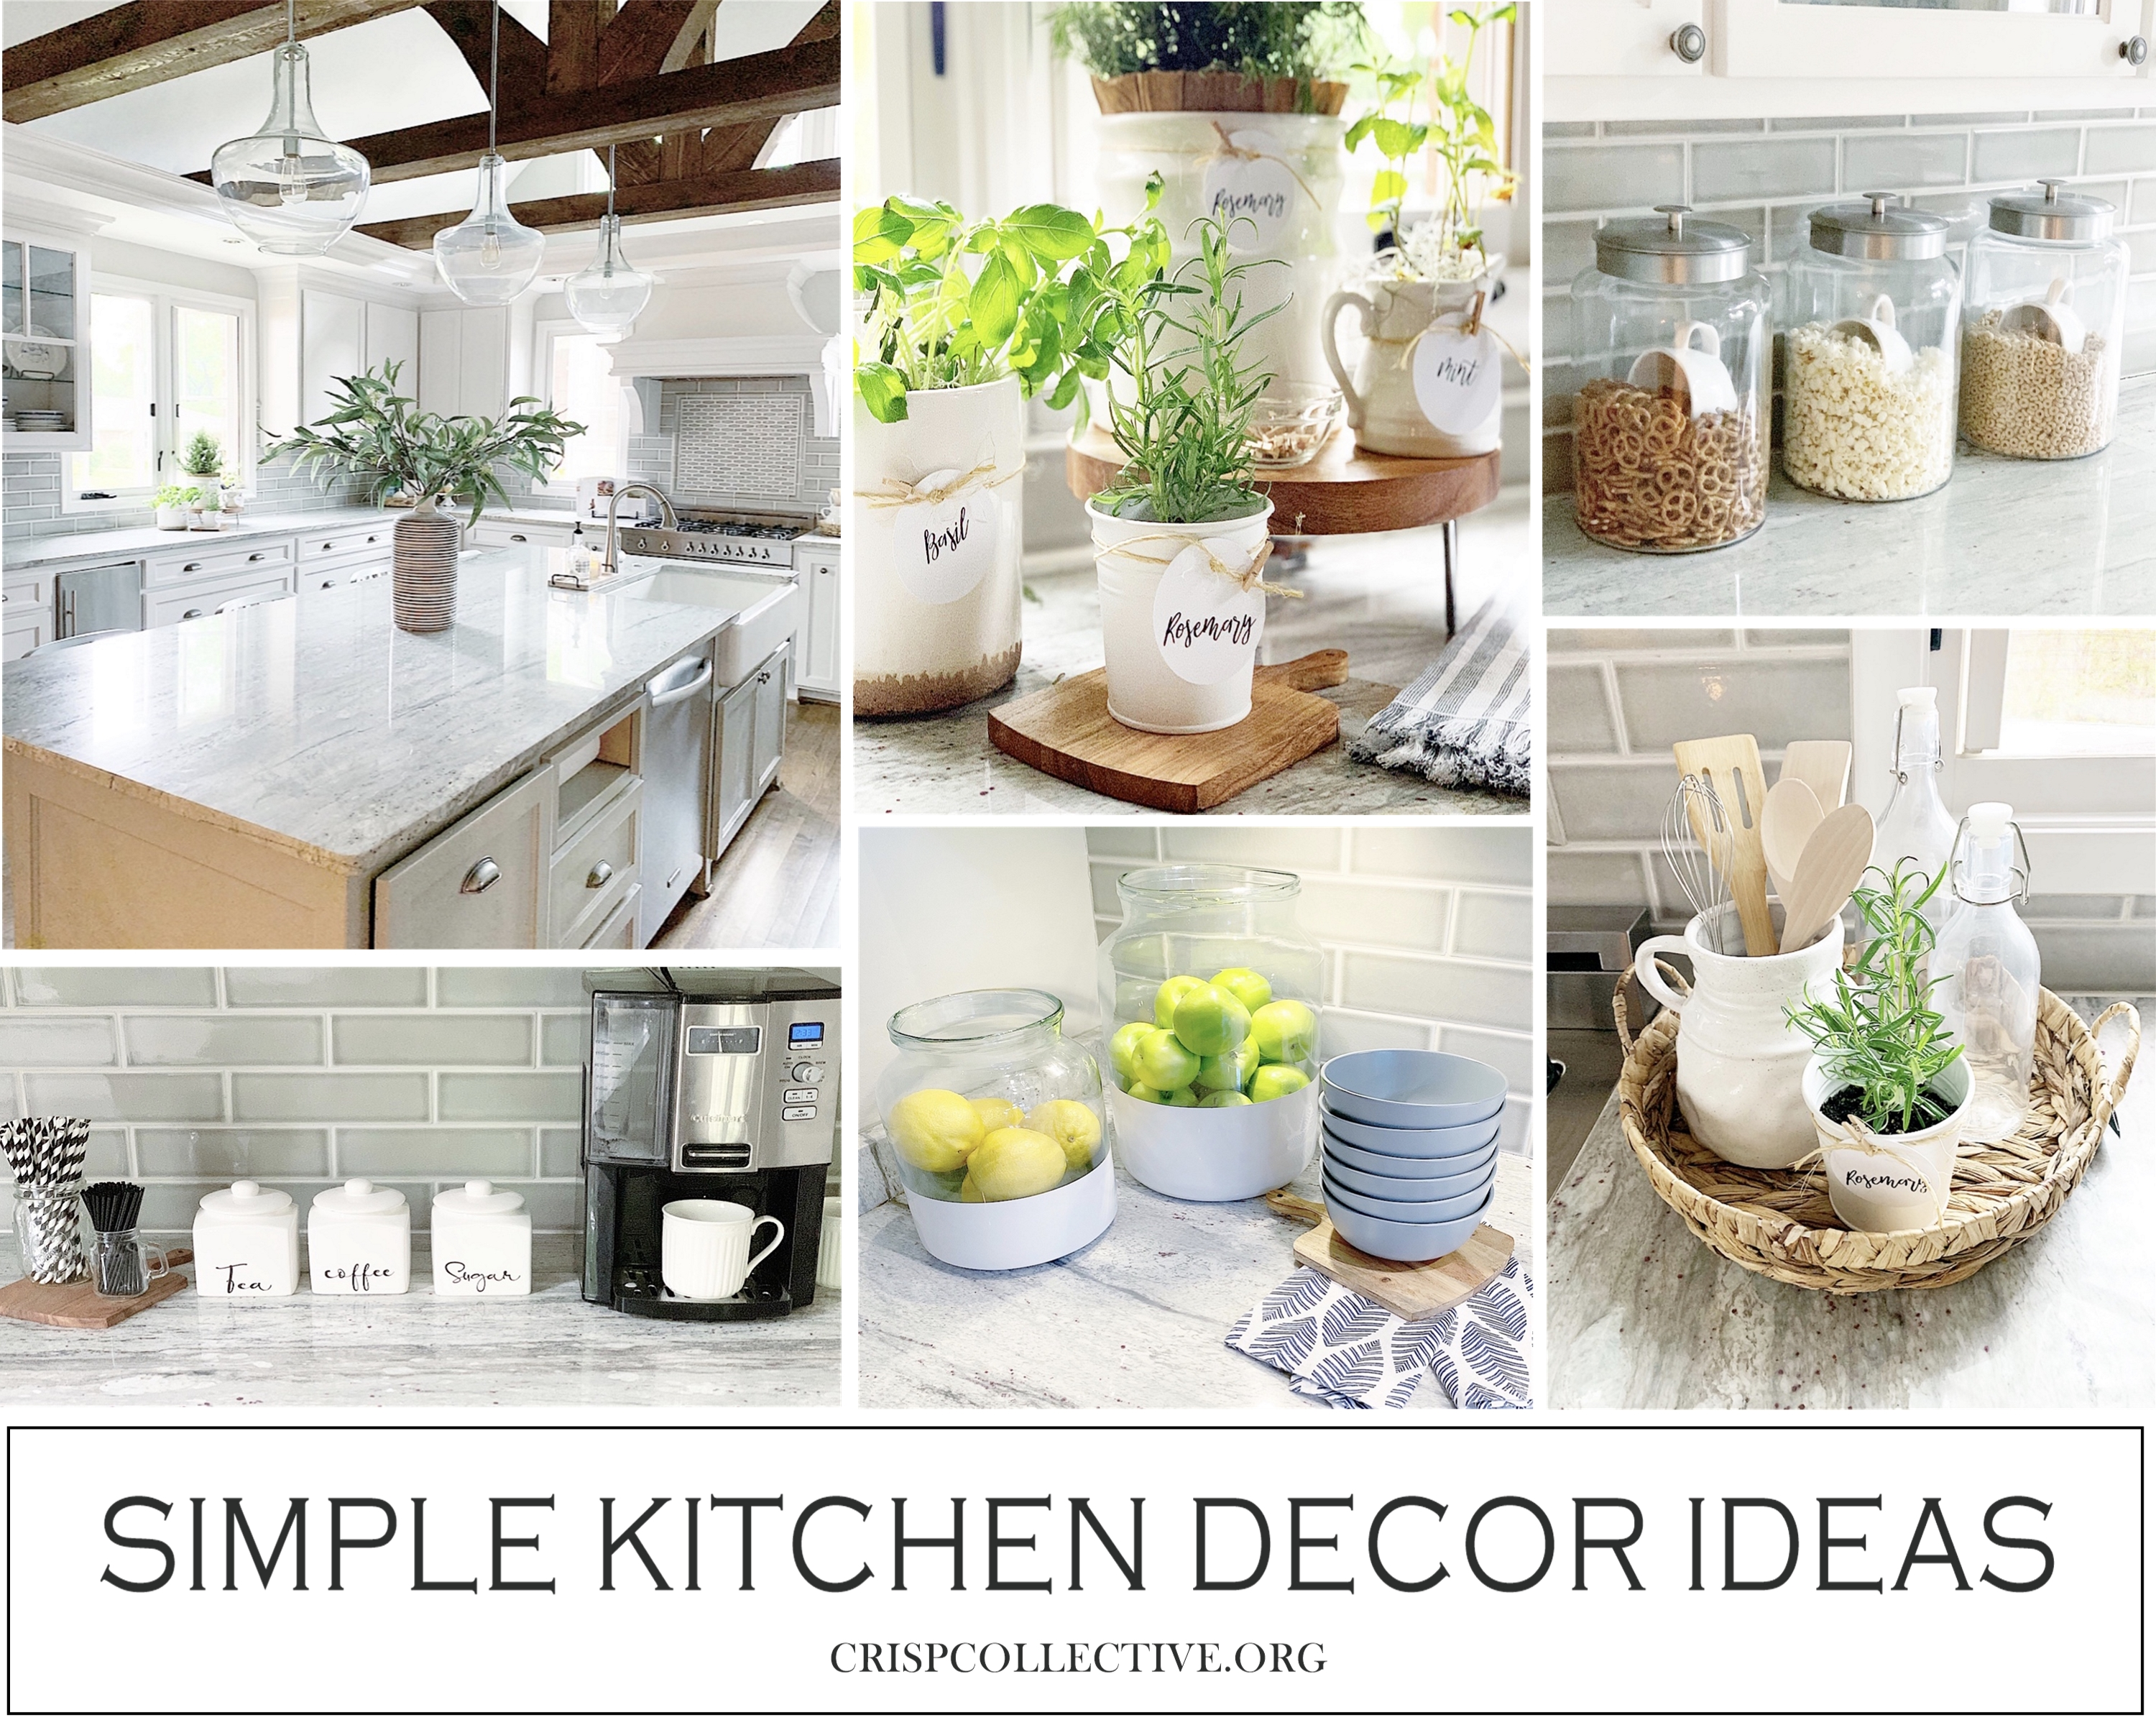 Simple Kitchen Decor Ideas